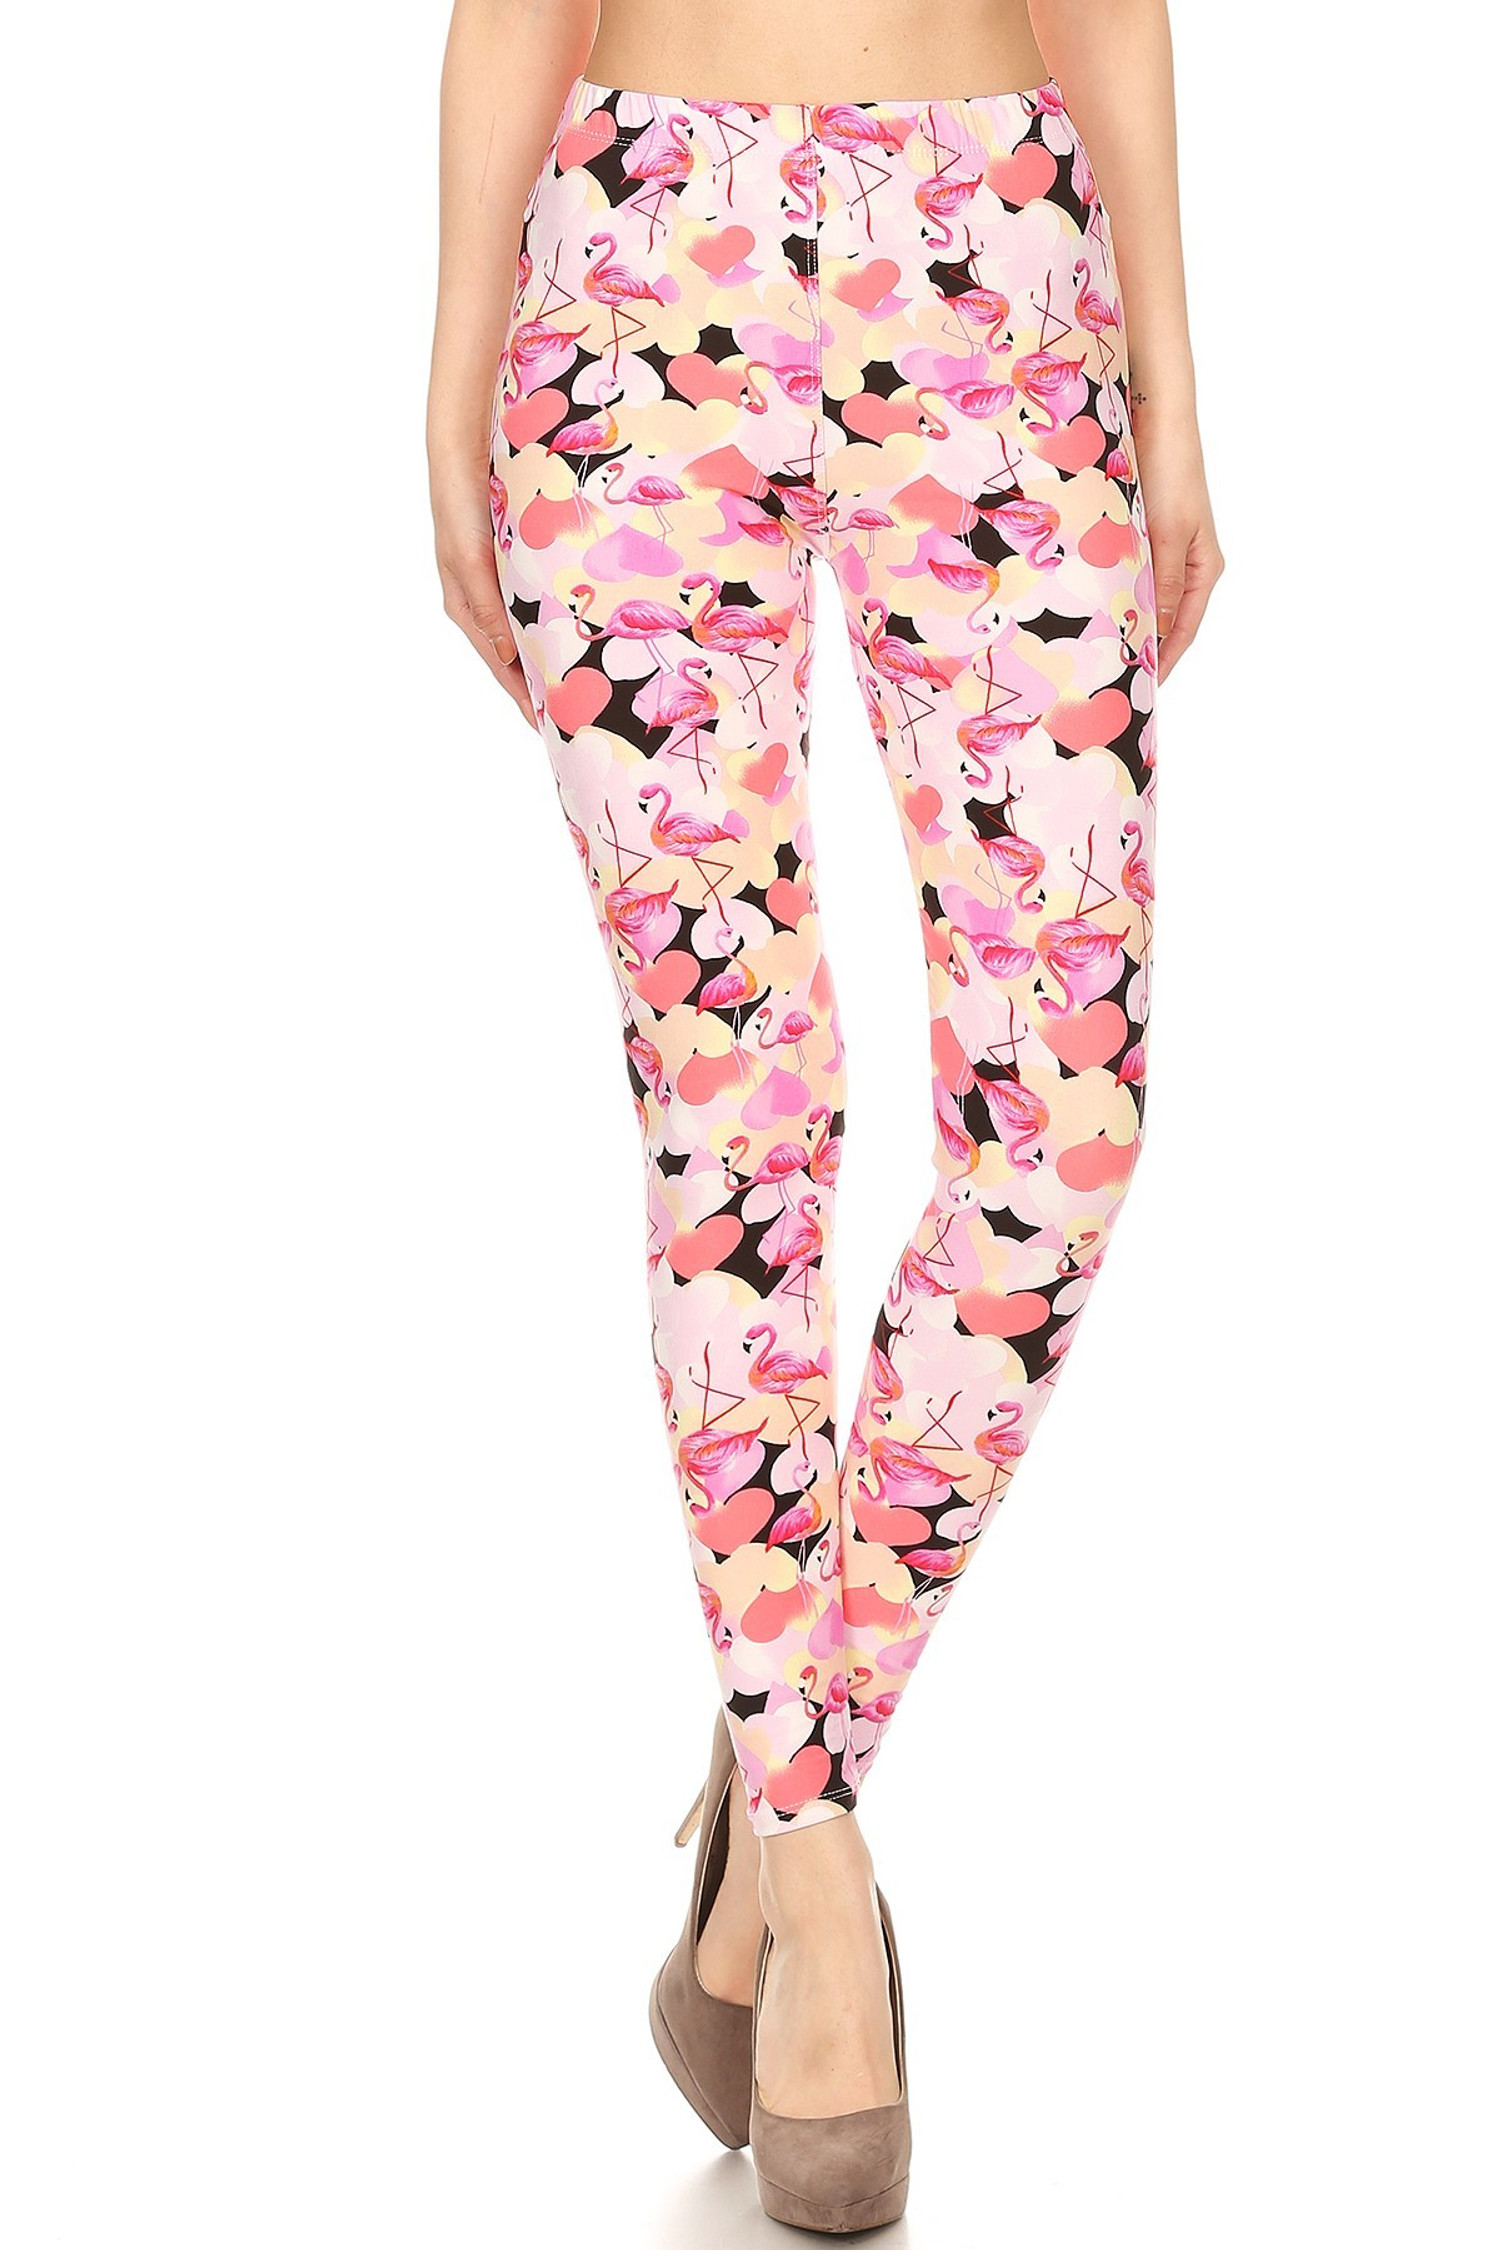 Front of Soft Brushed Gorgeous Pink Flamingos Leggings - XSmall